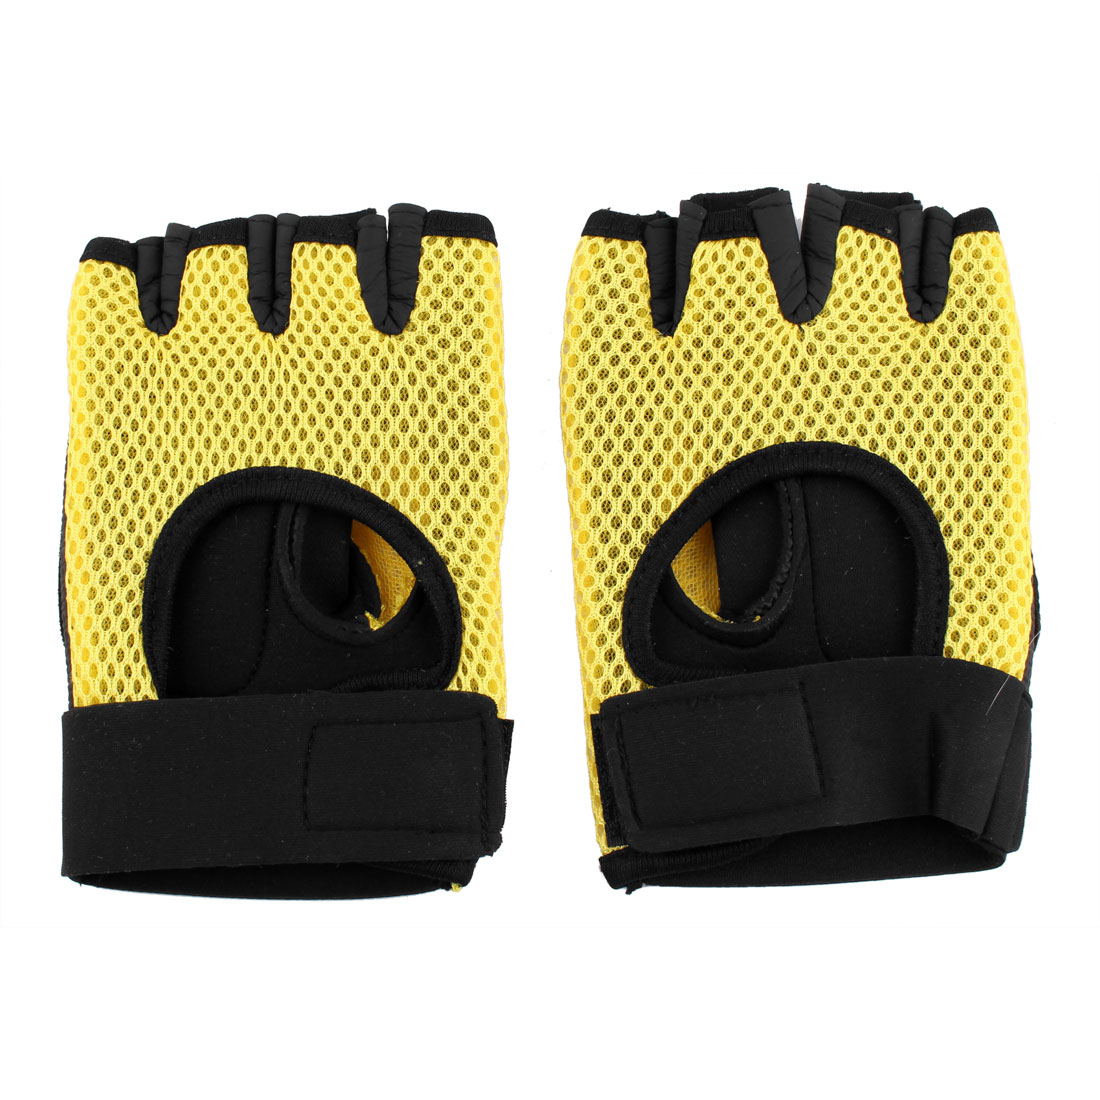 Unique BargainsSkating Weightlifting Cycling Fitness Half Finger Fingerless Gloves Yellow Pair